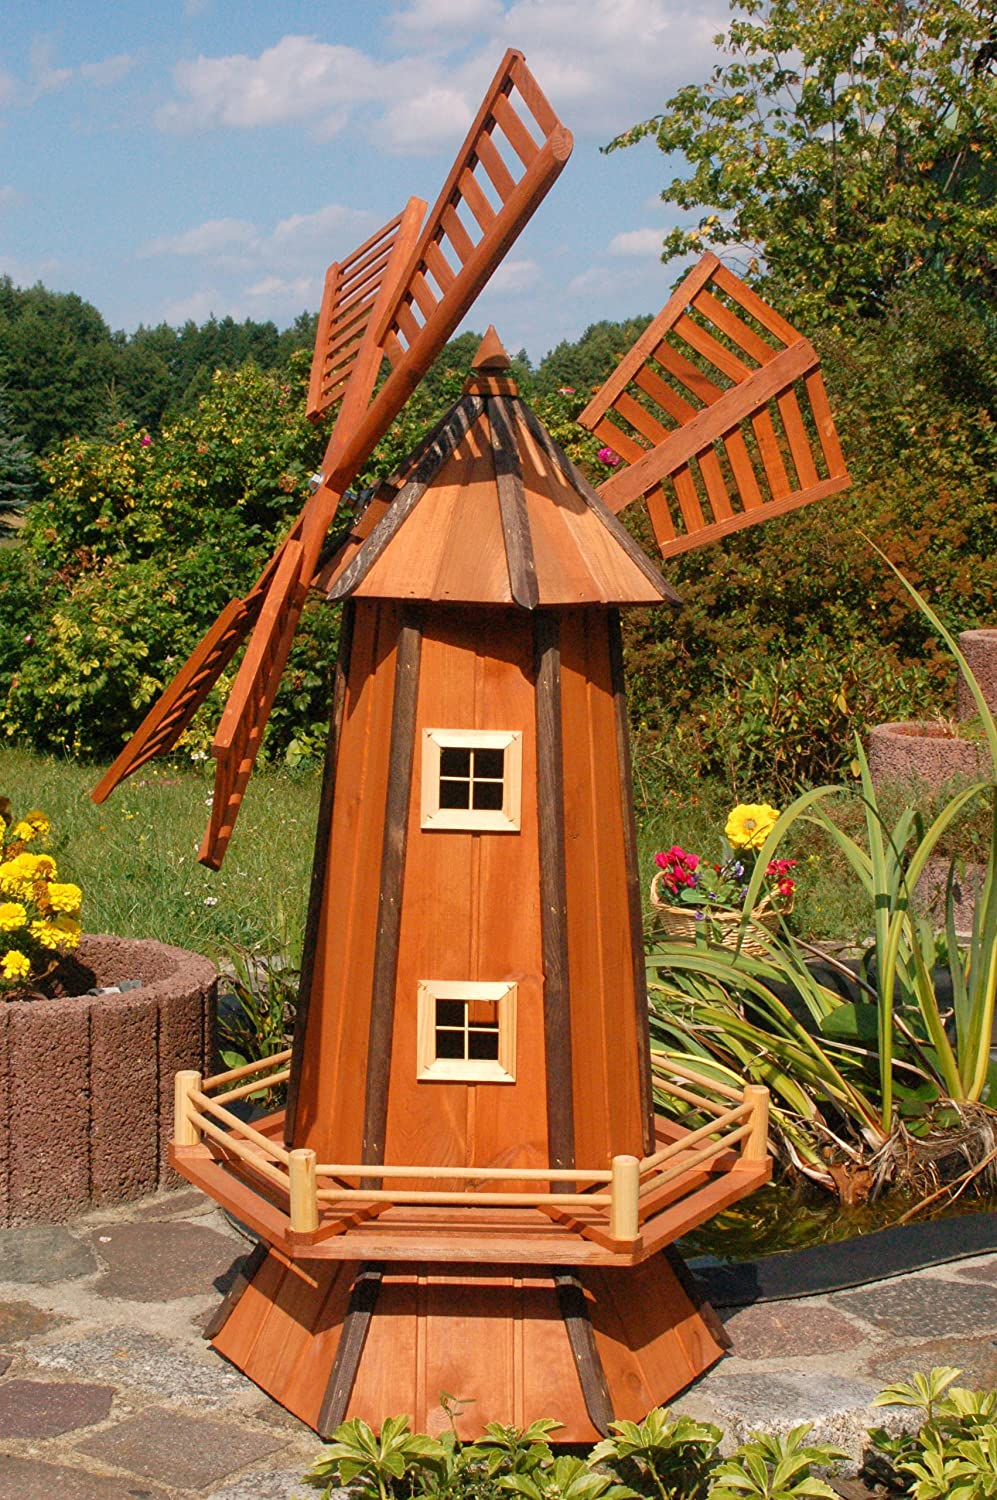 Huge Decorative Windmill Made Of Coated Wood With Ball Bearings 1.2 ...